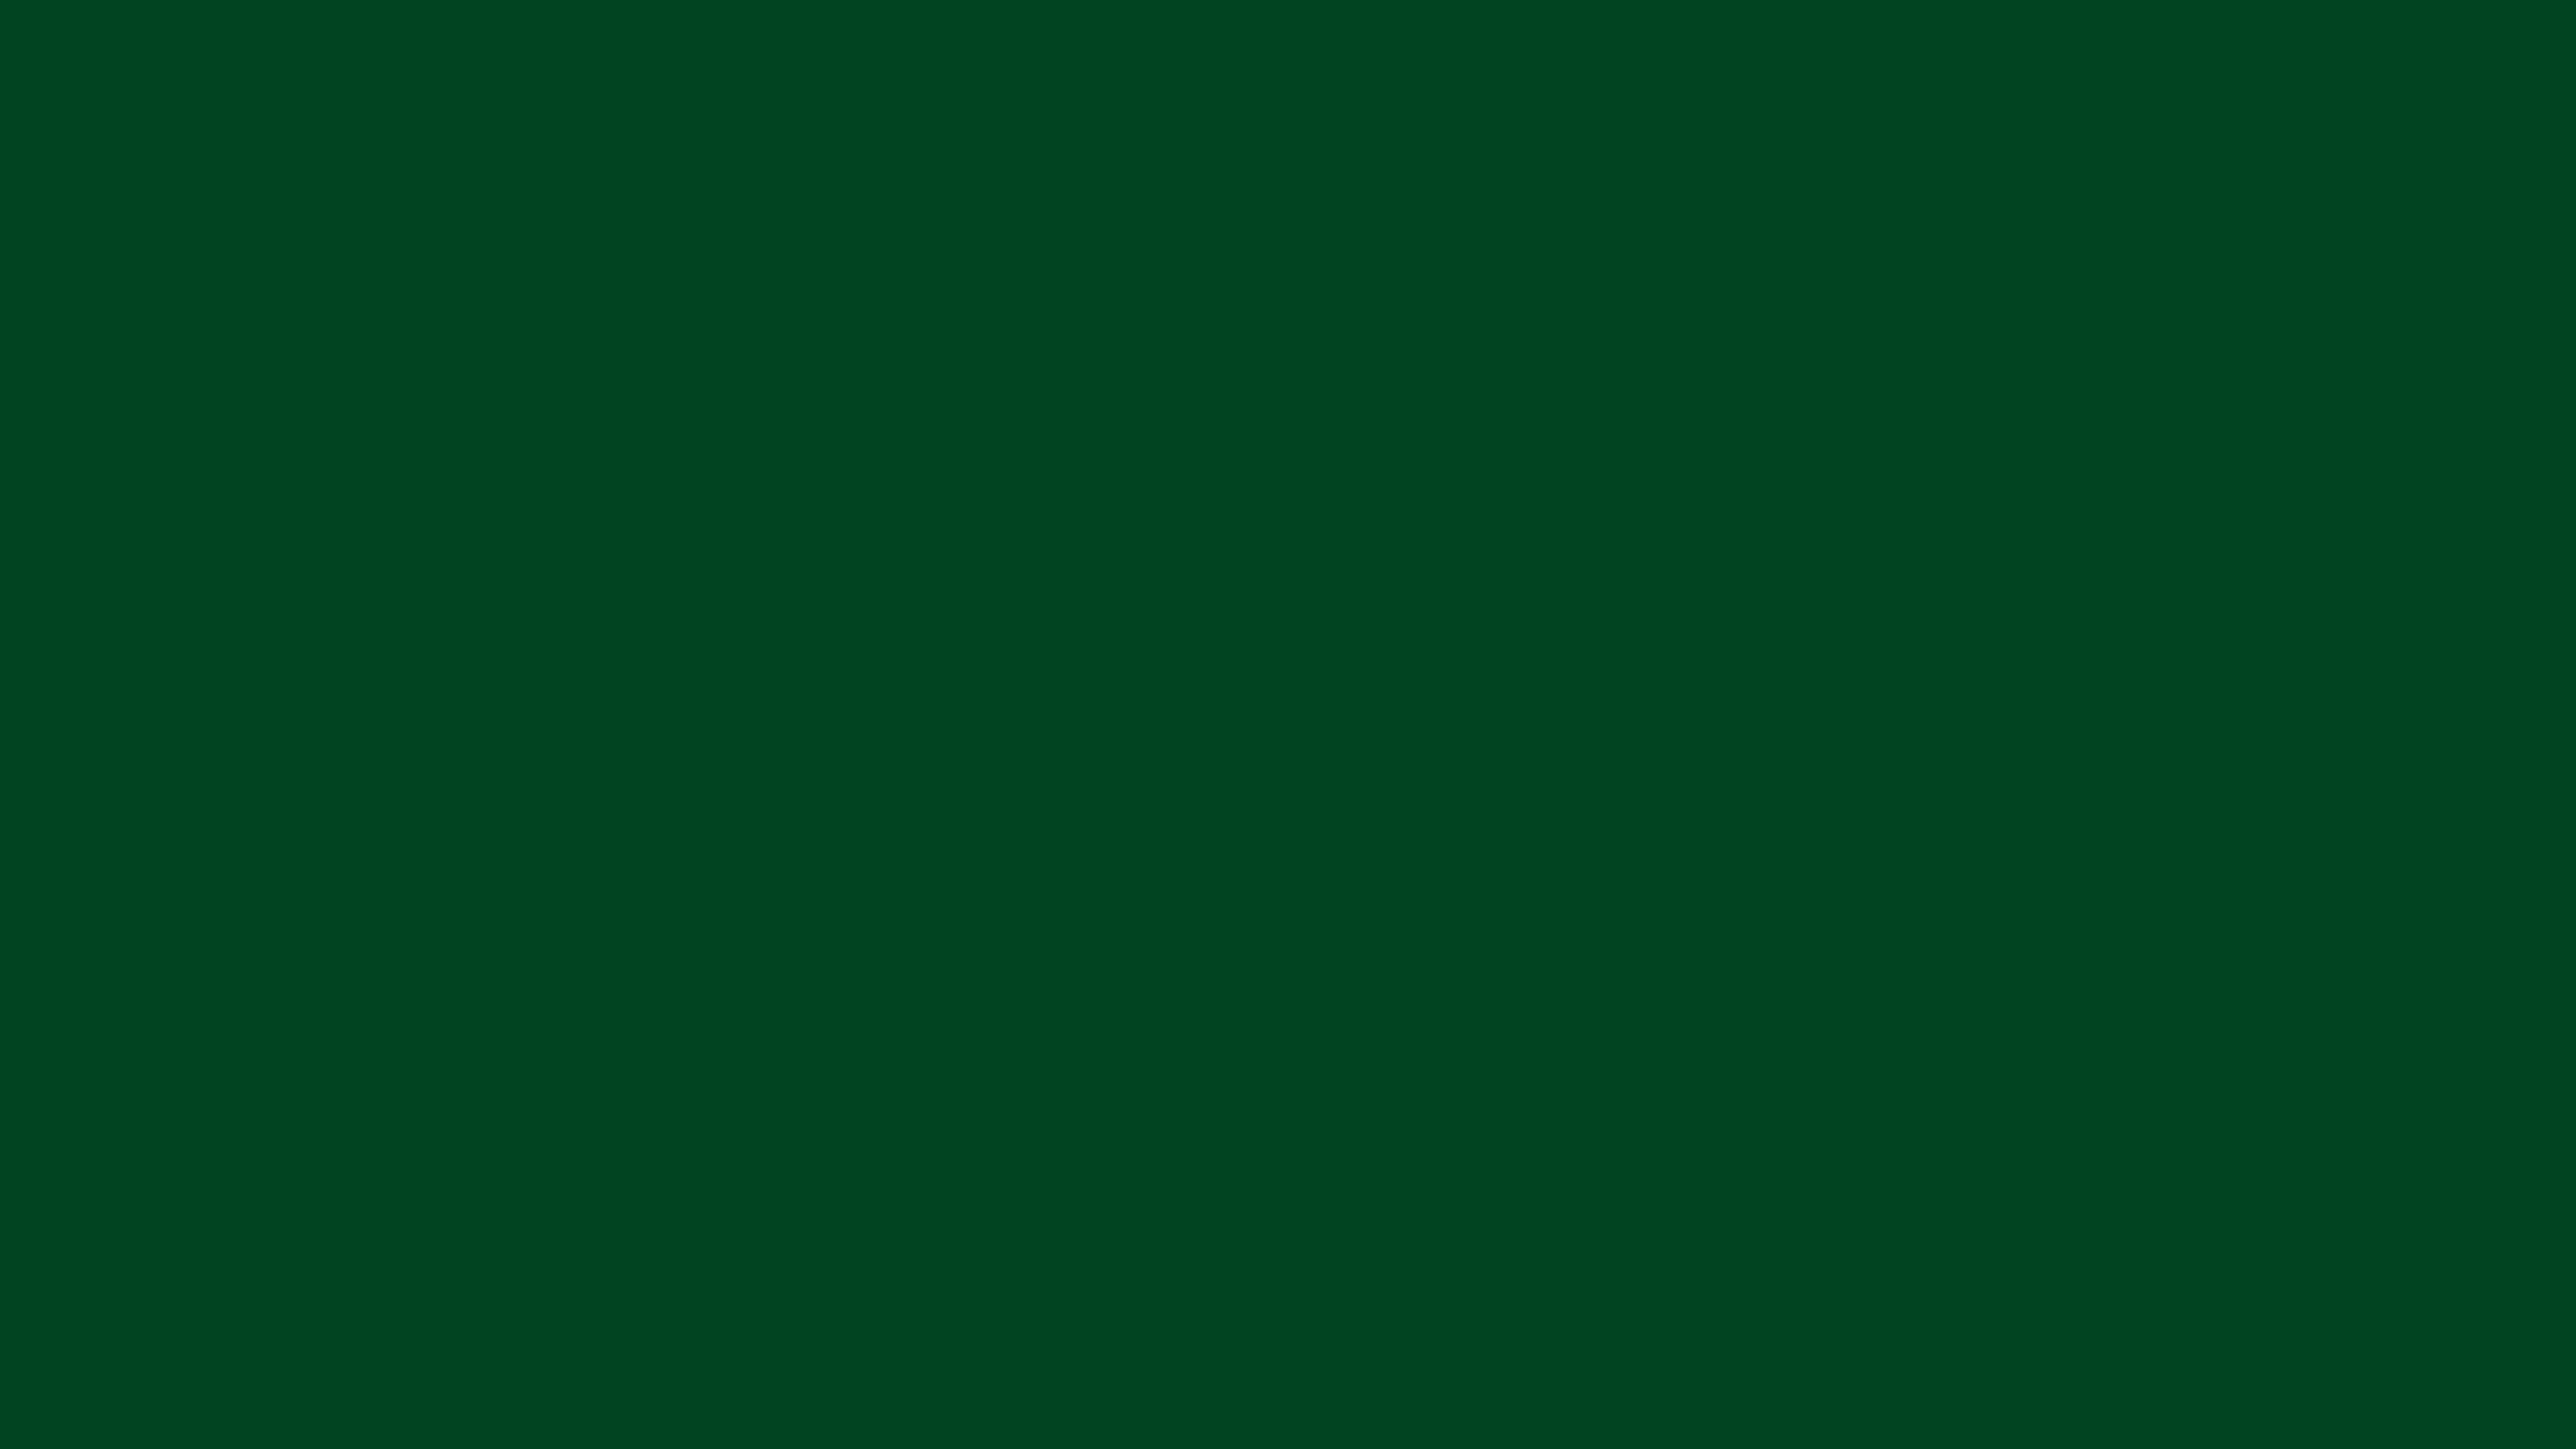 3840x2160 Forest Green Traditional Solid Color Background